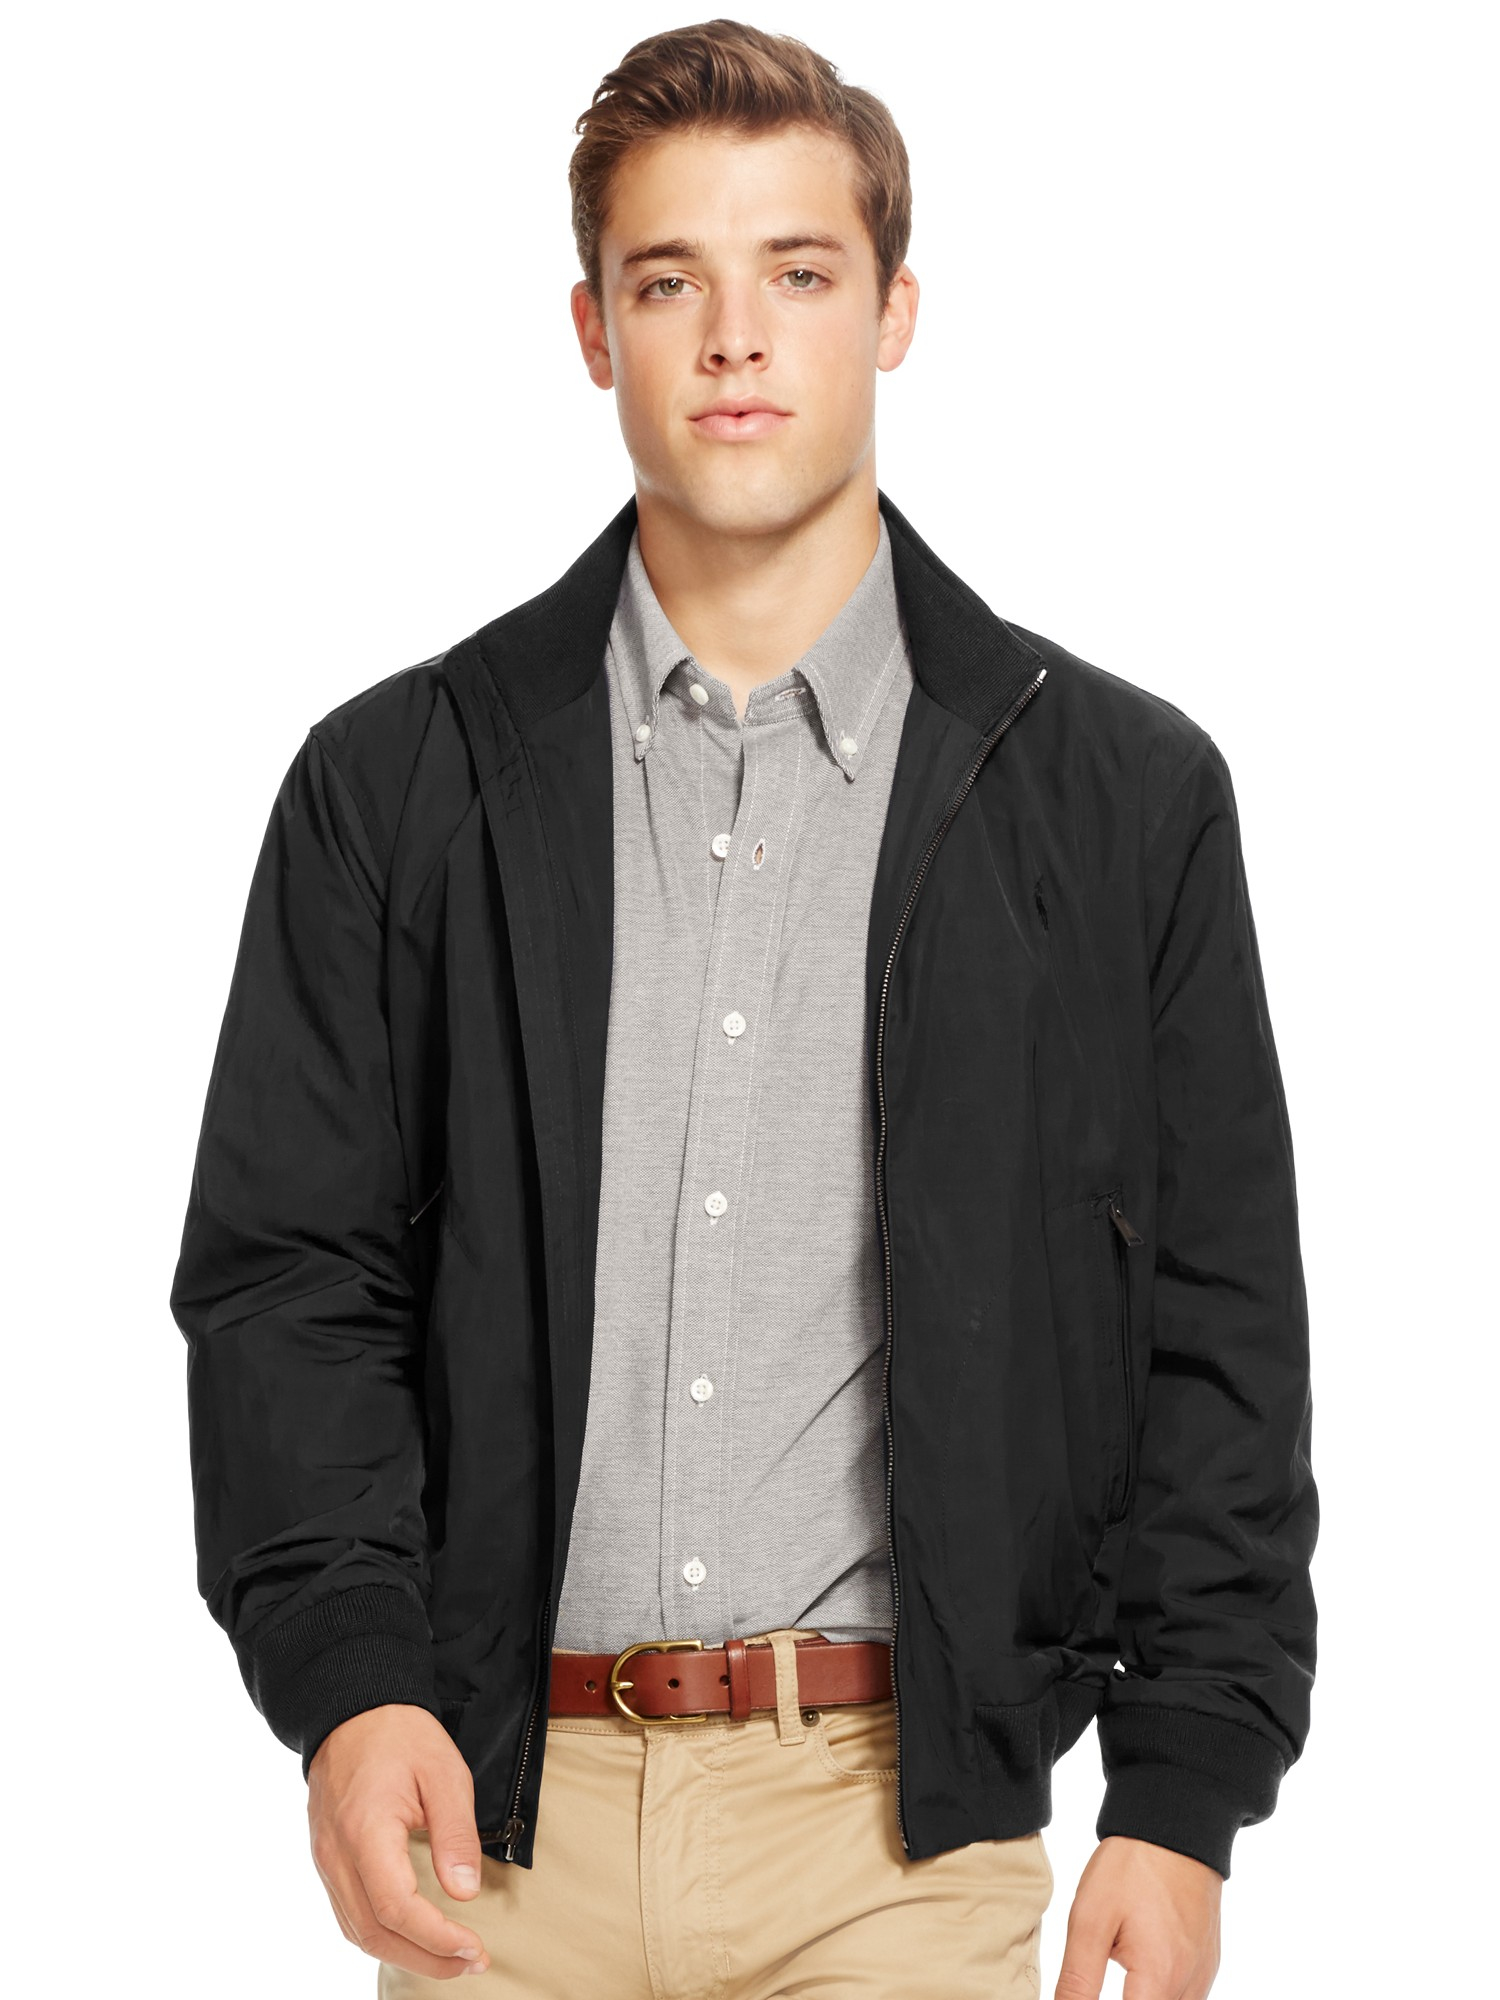 d95019b70ec7 Pink Pony Polo Barracuda Lined Jacket in Black for Men - Lyst